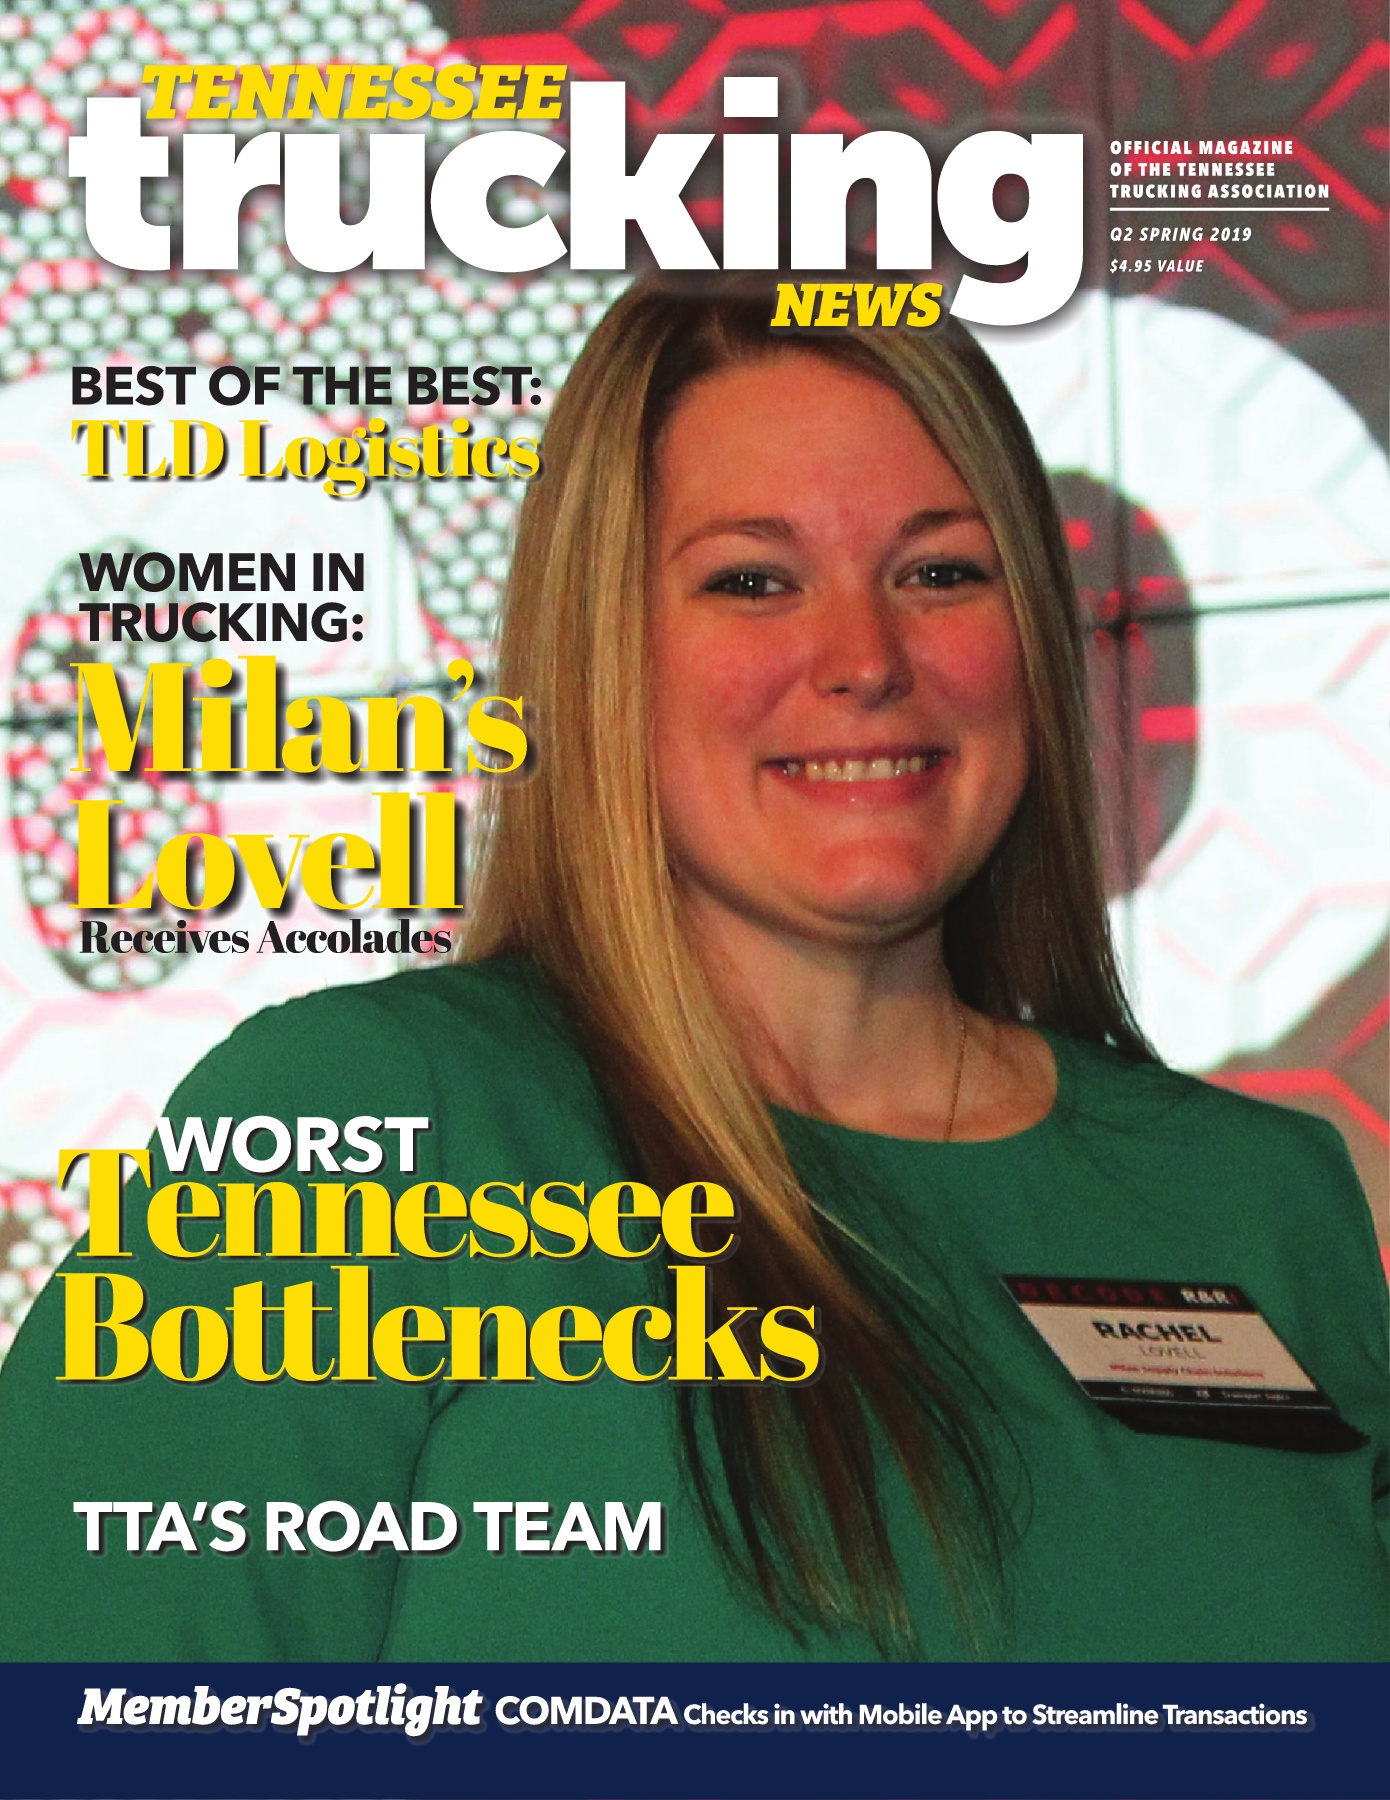 Tennessee Trucking News Q1 Spring 2019 Featuring Rochel Lovell Milan Supply Chain And Women In Trucking Pages 1 36 Text Version Anyflip